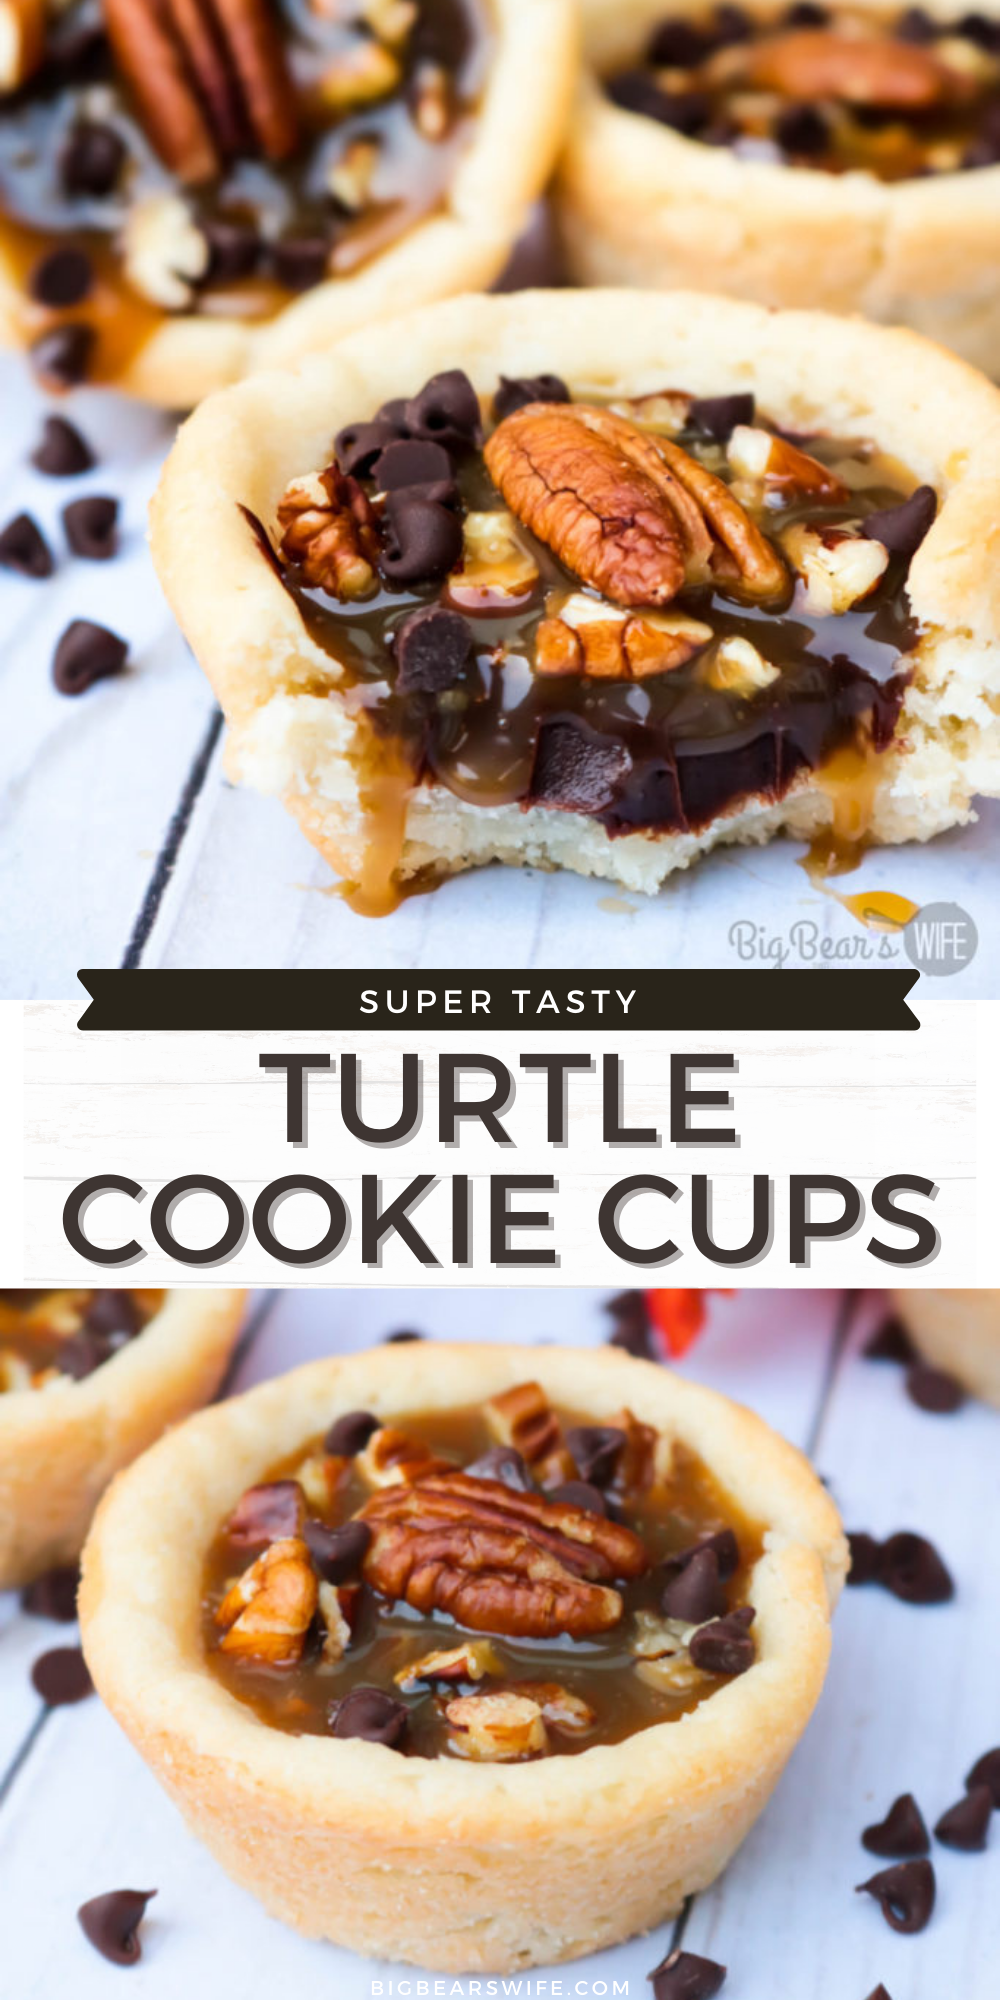 Easy, portable and delicious – these Turtle Cookie Cups are a dessert for any occasion. These delicious sugar cookie cups are filled with a homemade chocolate ganache, a layer of chopped pecans and topped with a sweet caramel sauce for a tasty, must-try treat. via @bigbearswife